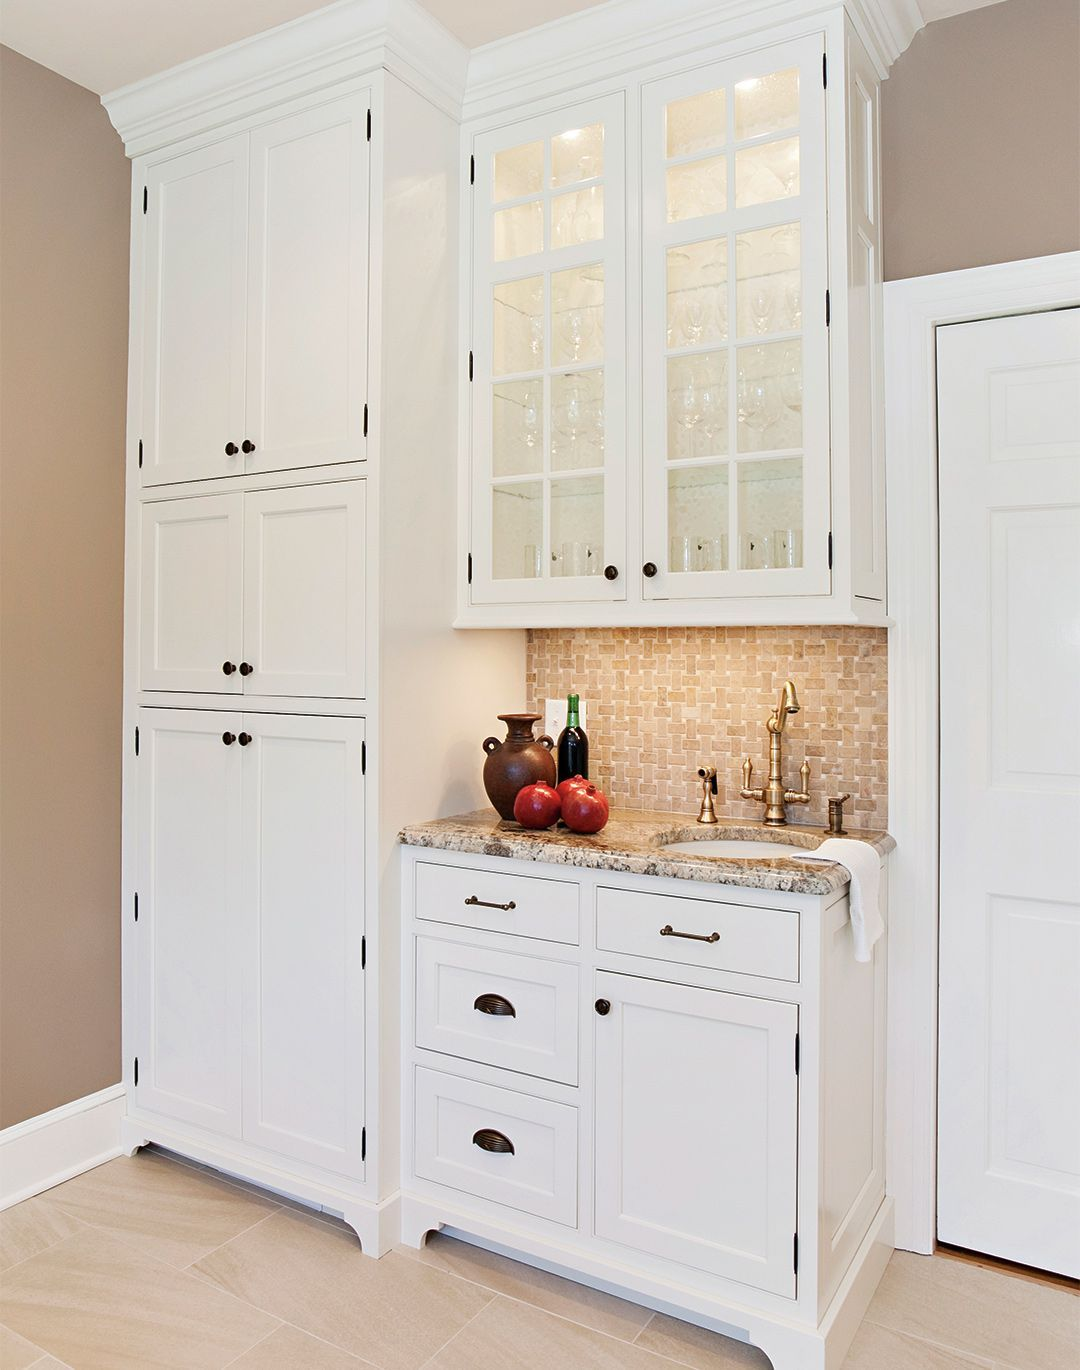 Cottage Kitchen Cabinetry Dressed in White   Plain & Fancy ...